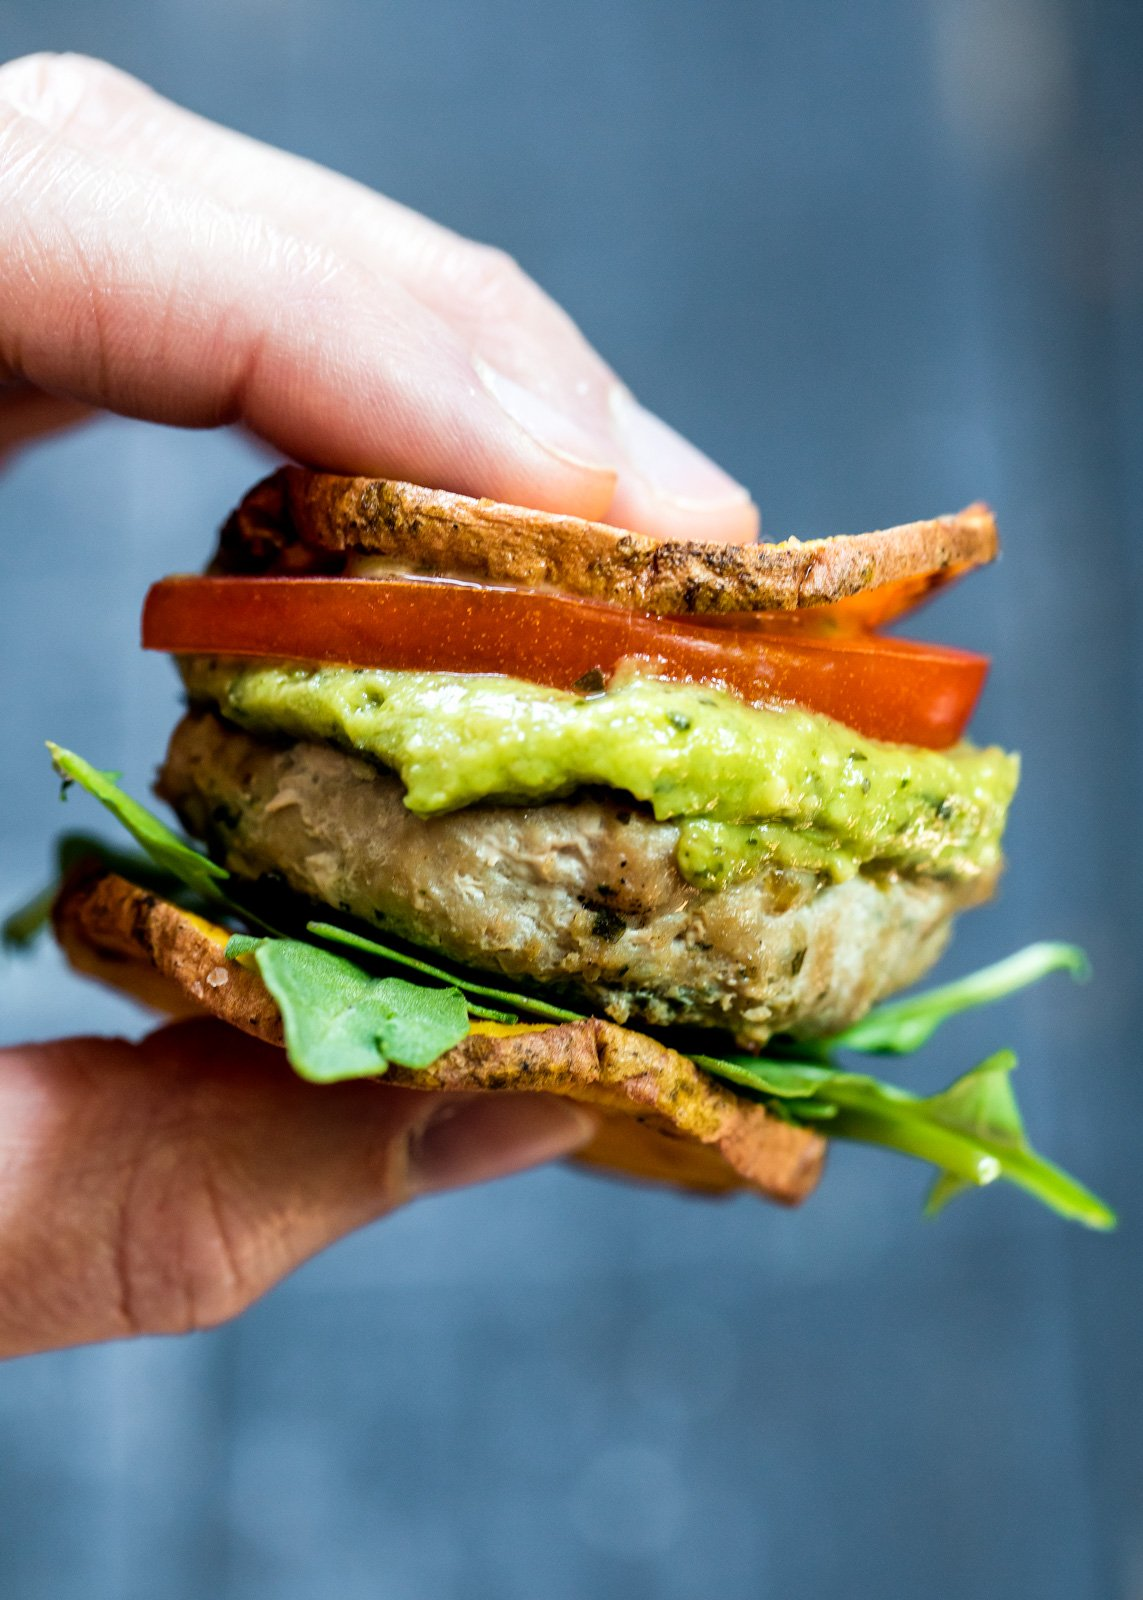 Paleo and gluten free turkey burger sliders on sweet potato buns. An easy bite sized recipe or appetizer for entertaining.